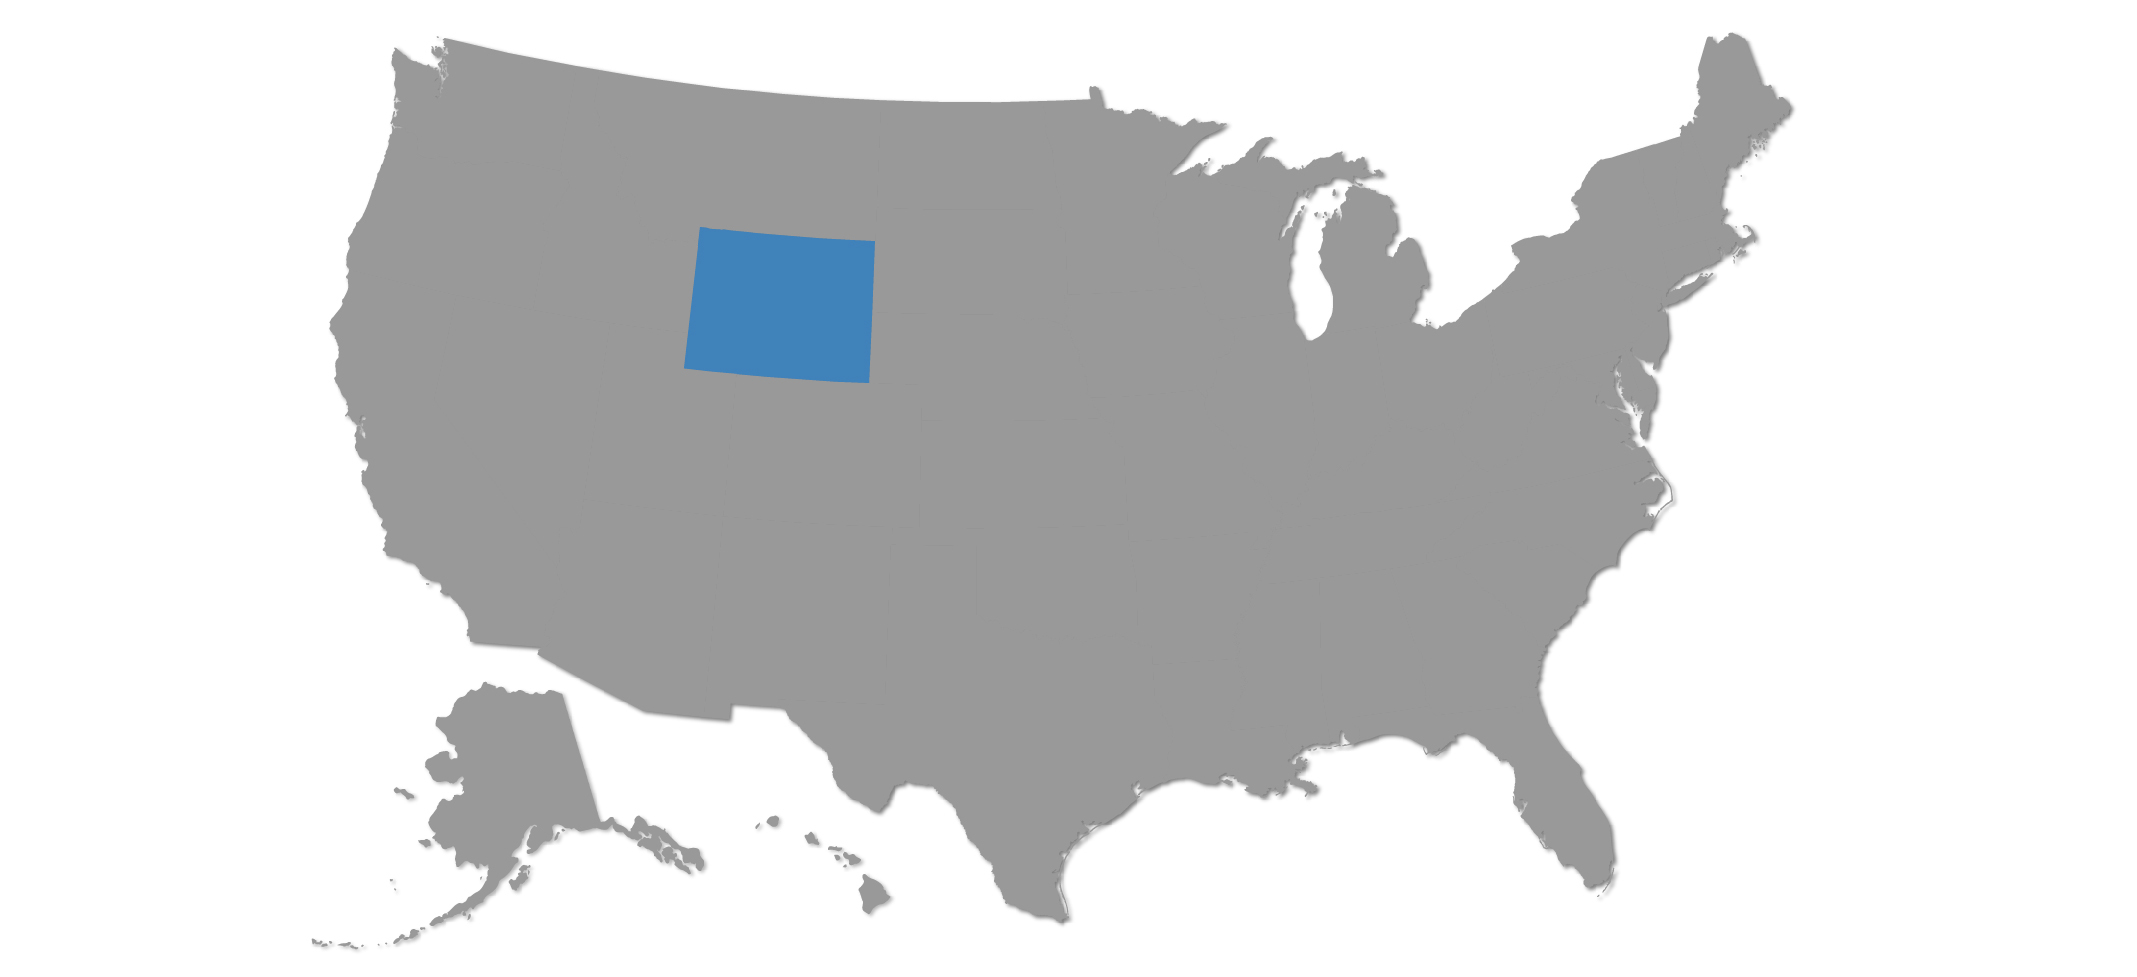 American Association of Nurse Practitioners - Wyoming State Policy